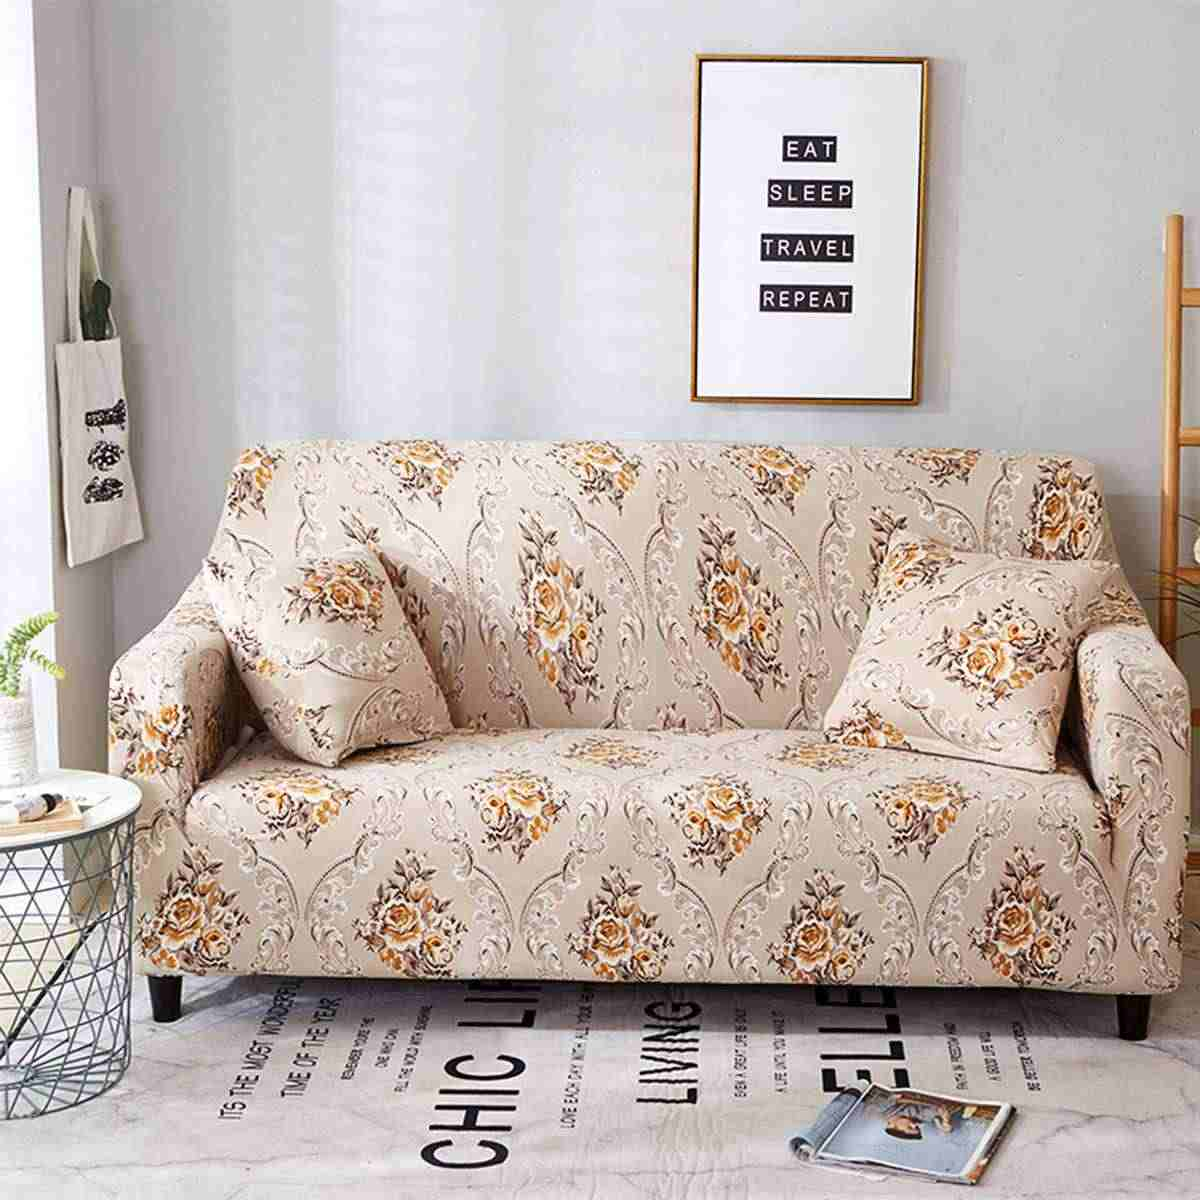 Sofa Cover Slipcovers Elastic All Inclusive Couch Case For Diffe Shape Loveseat Chair L